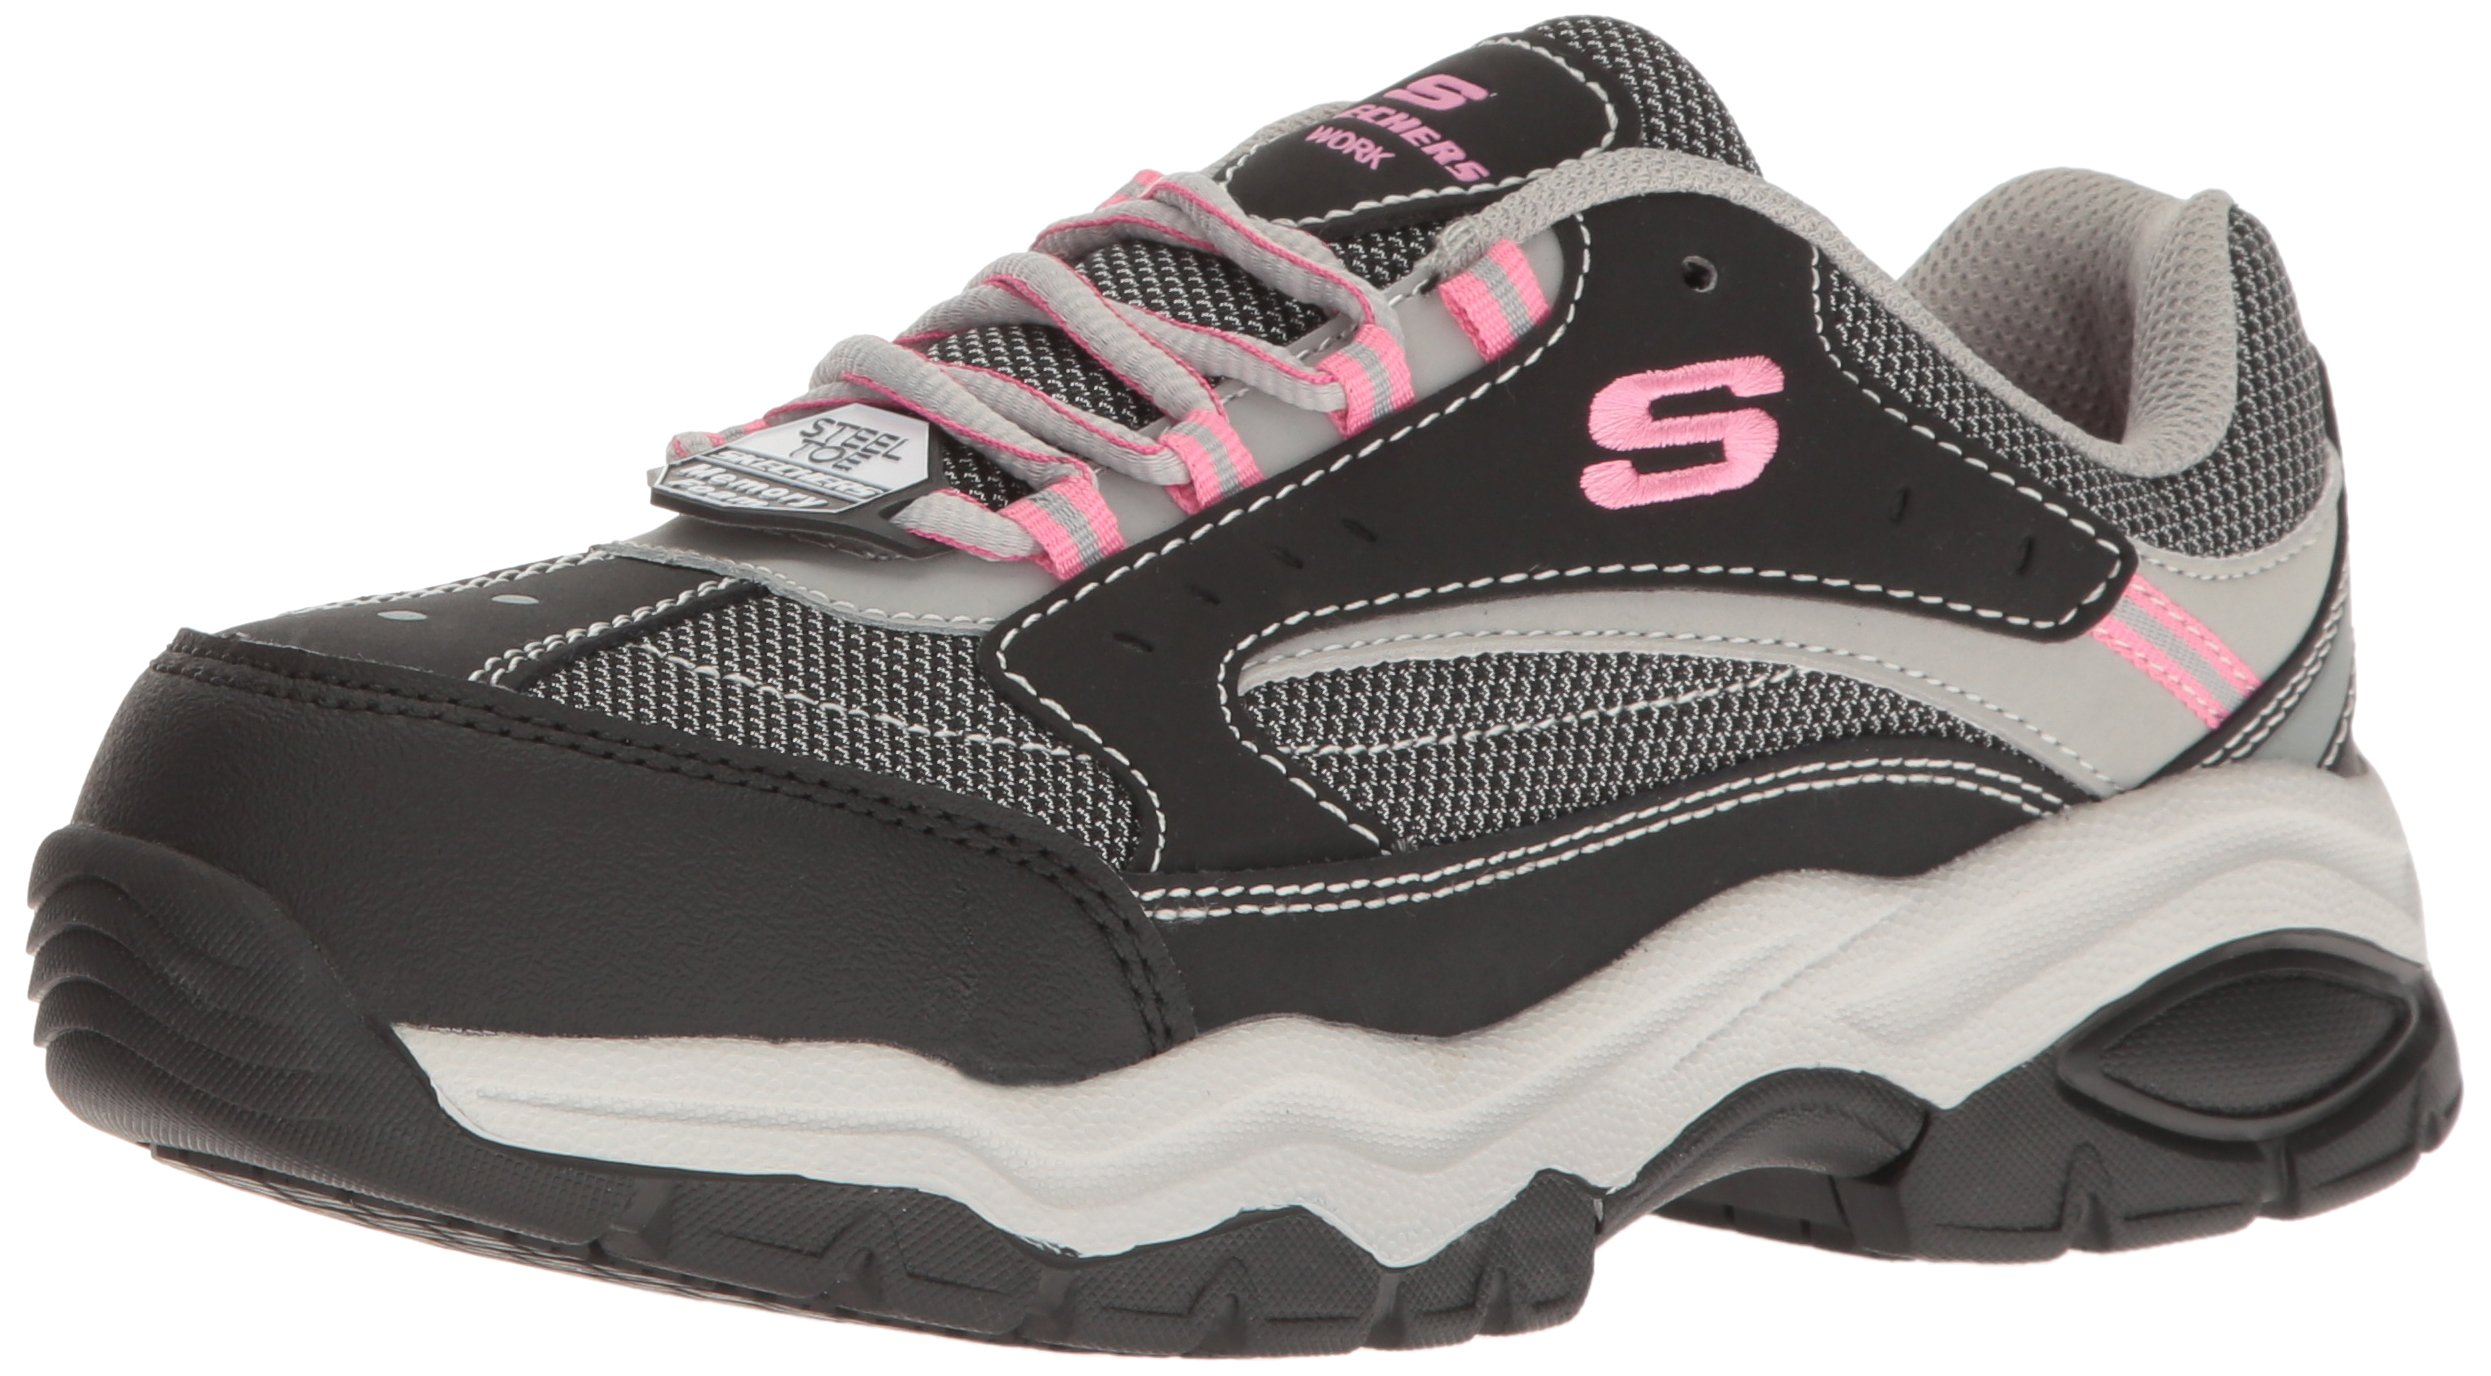 Skechers for Work Women's BISCO Work Shoe, Black/Gray, 8 M US by Skechers